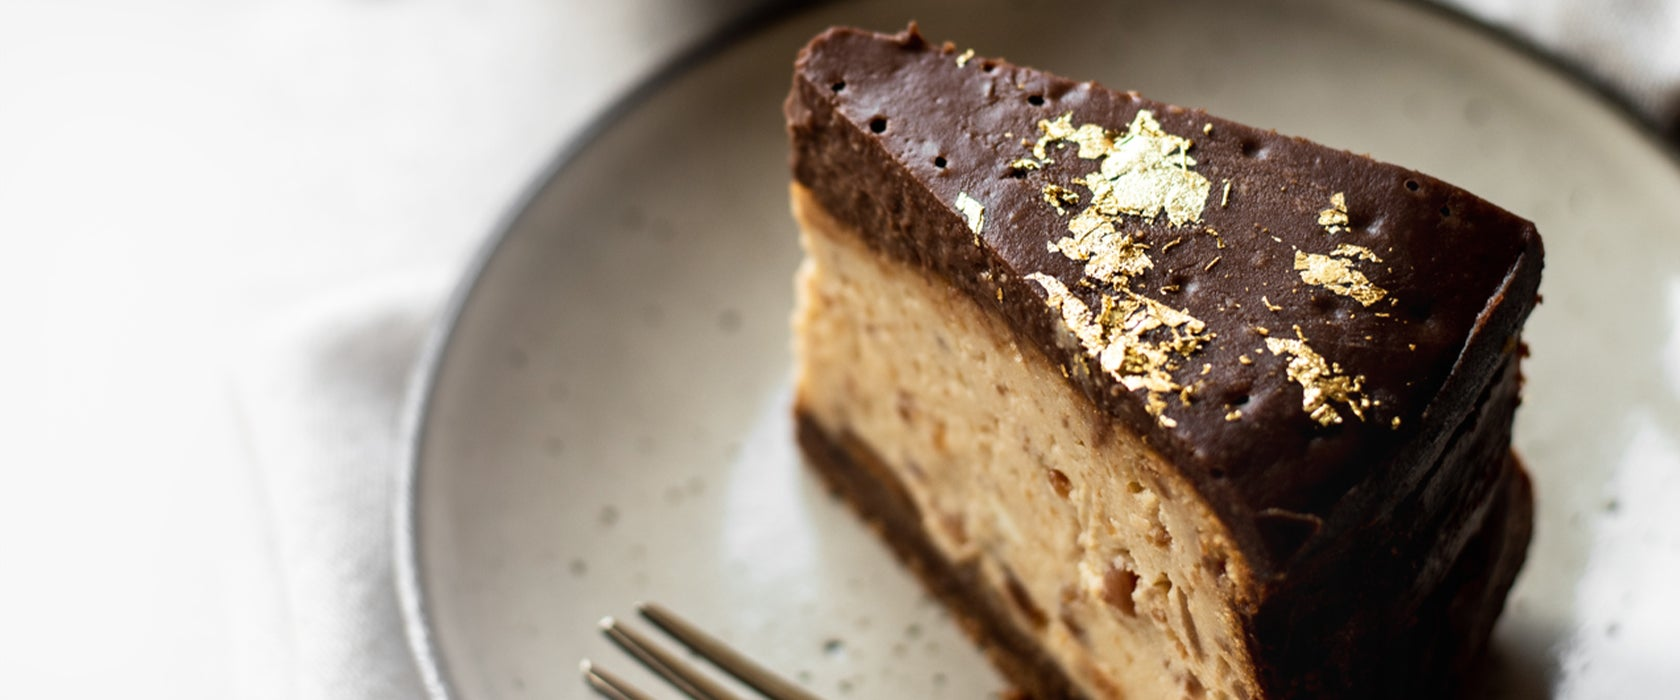 Peanut Butter Baked Cheesecake